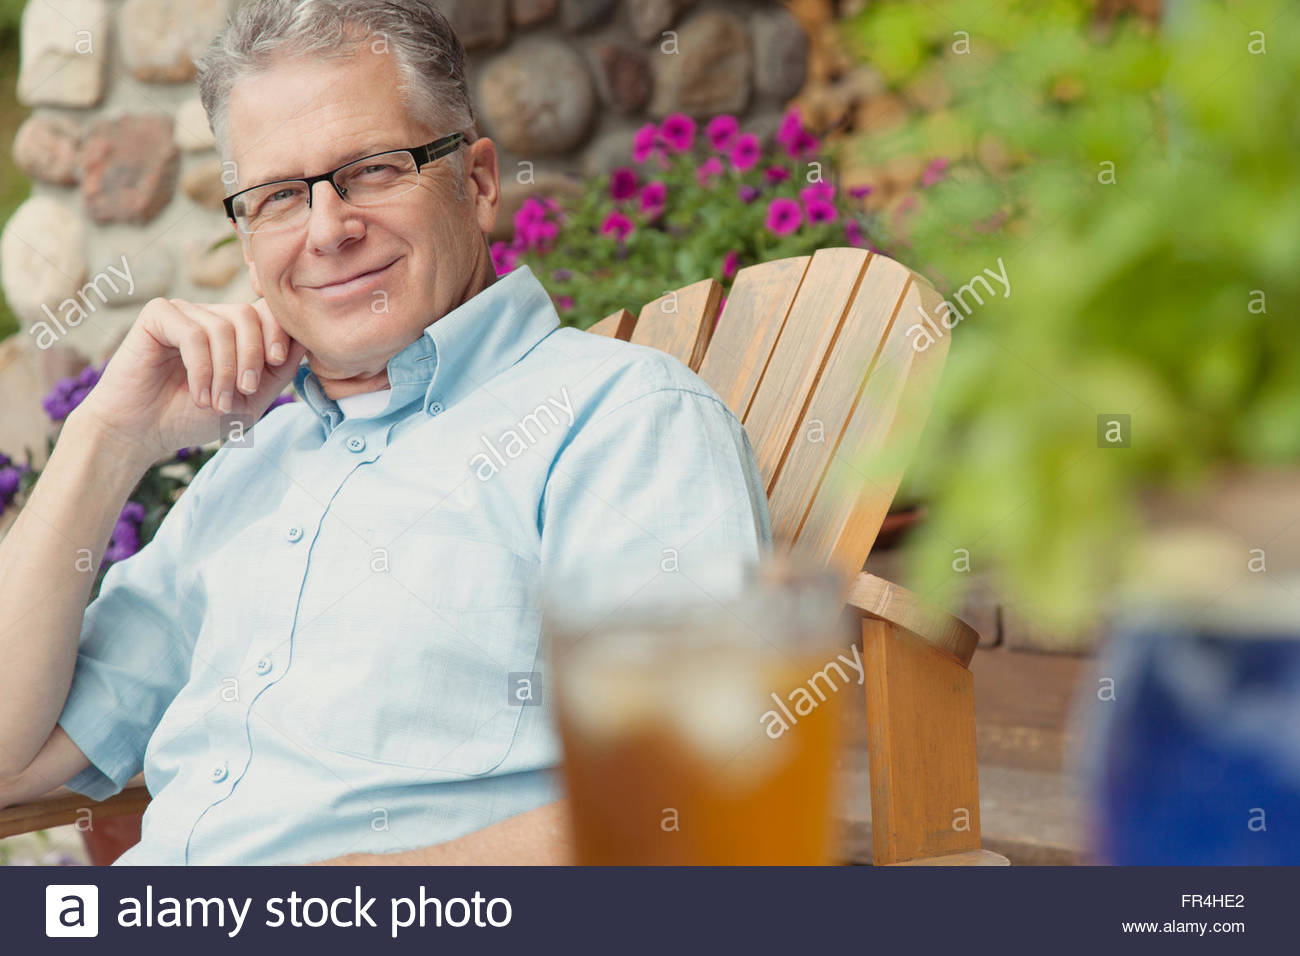 Portrait of attractive middle-aged man relaxing outdoors Photo Stock